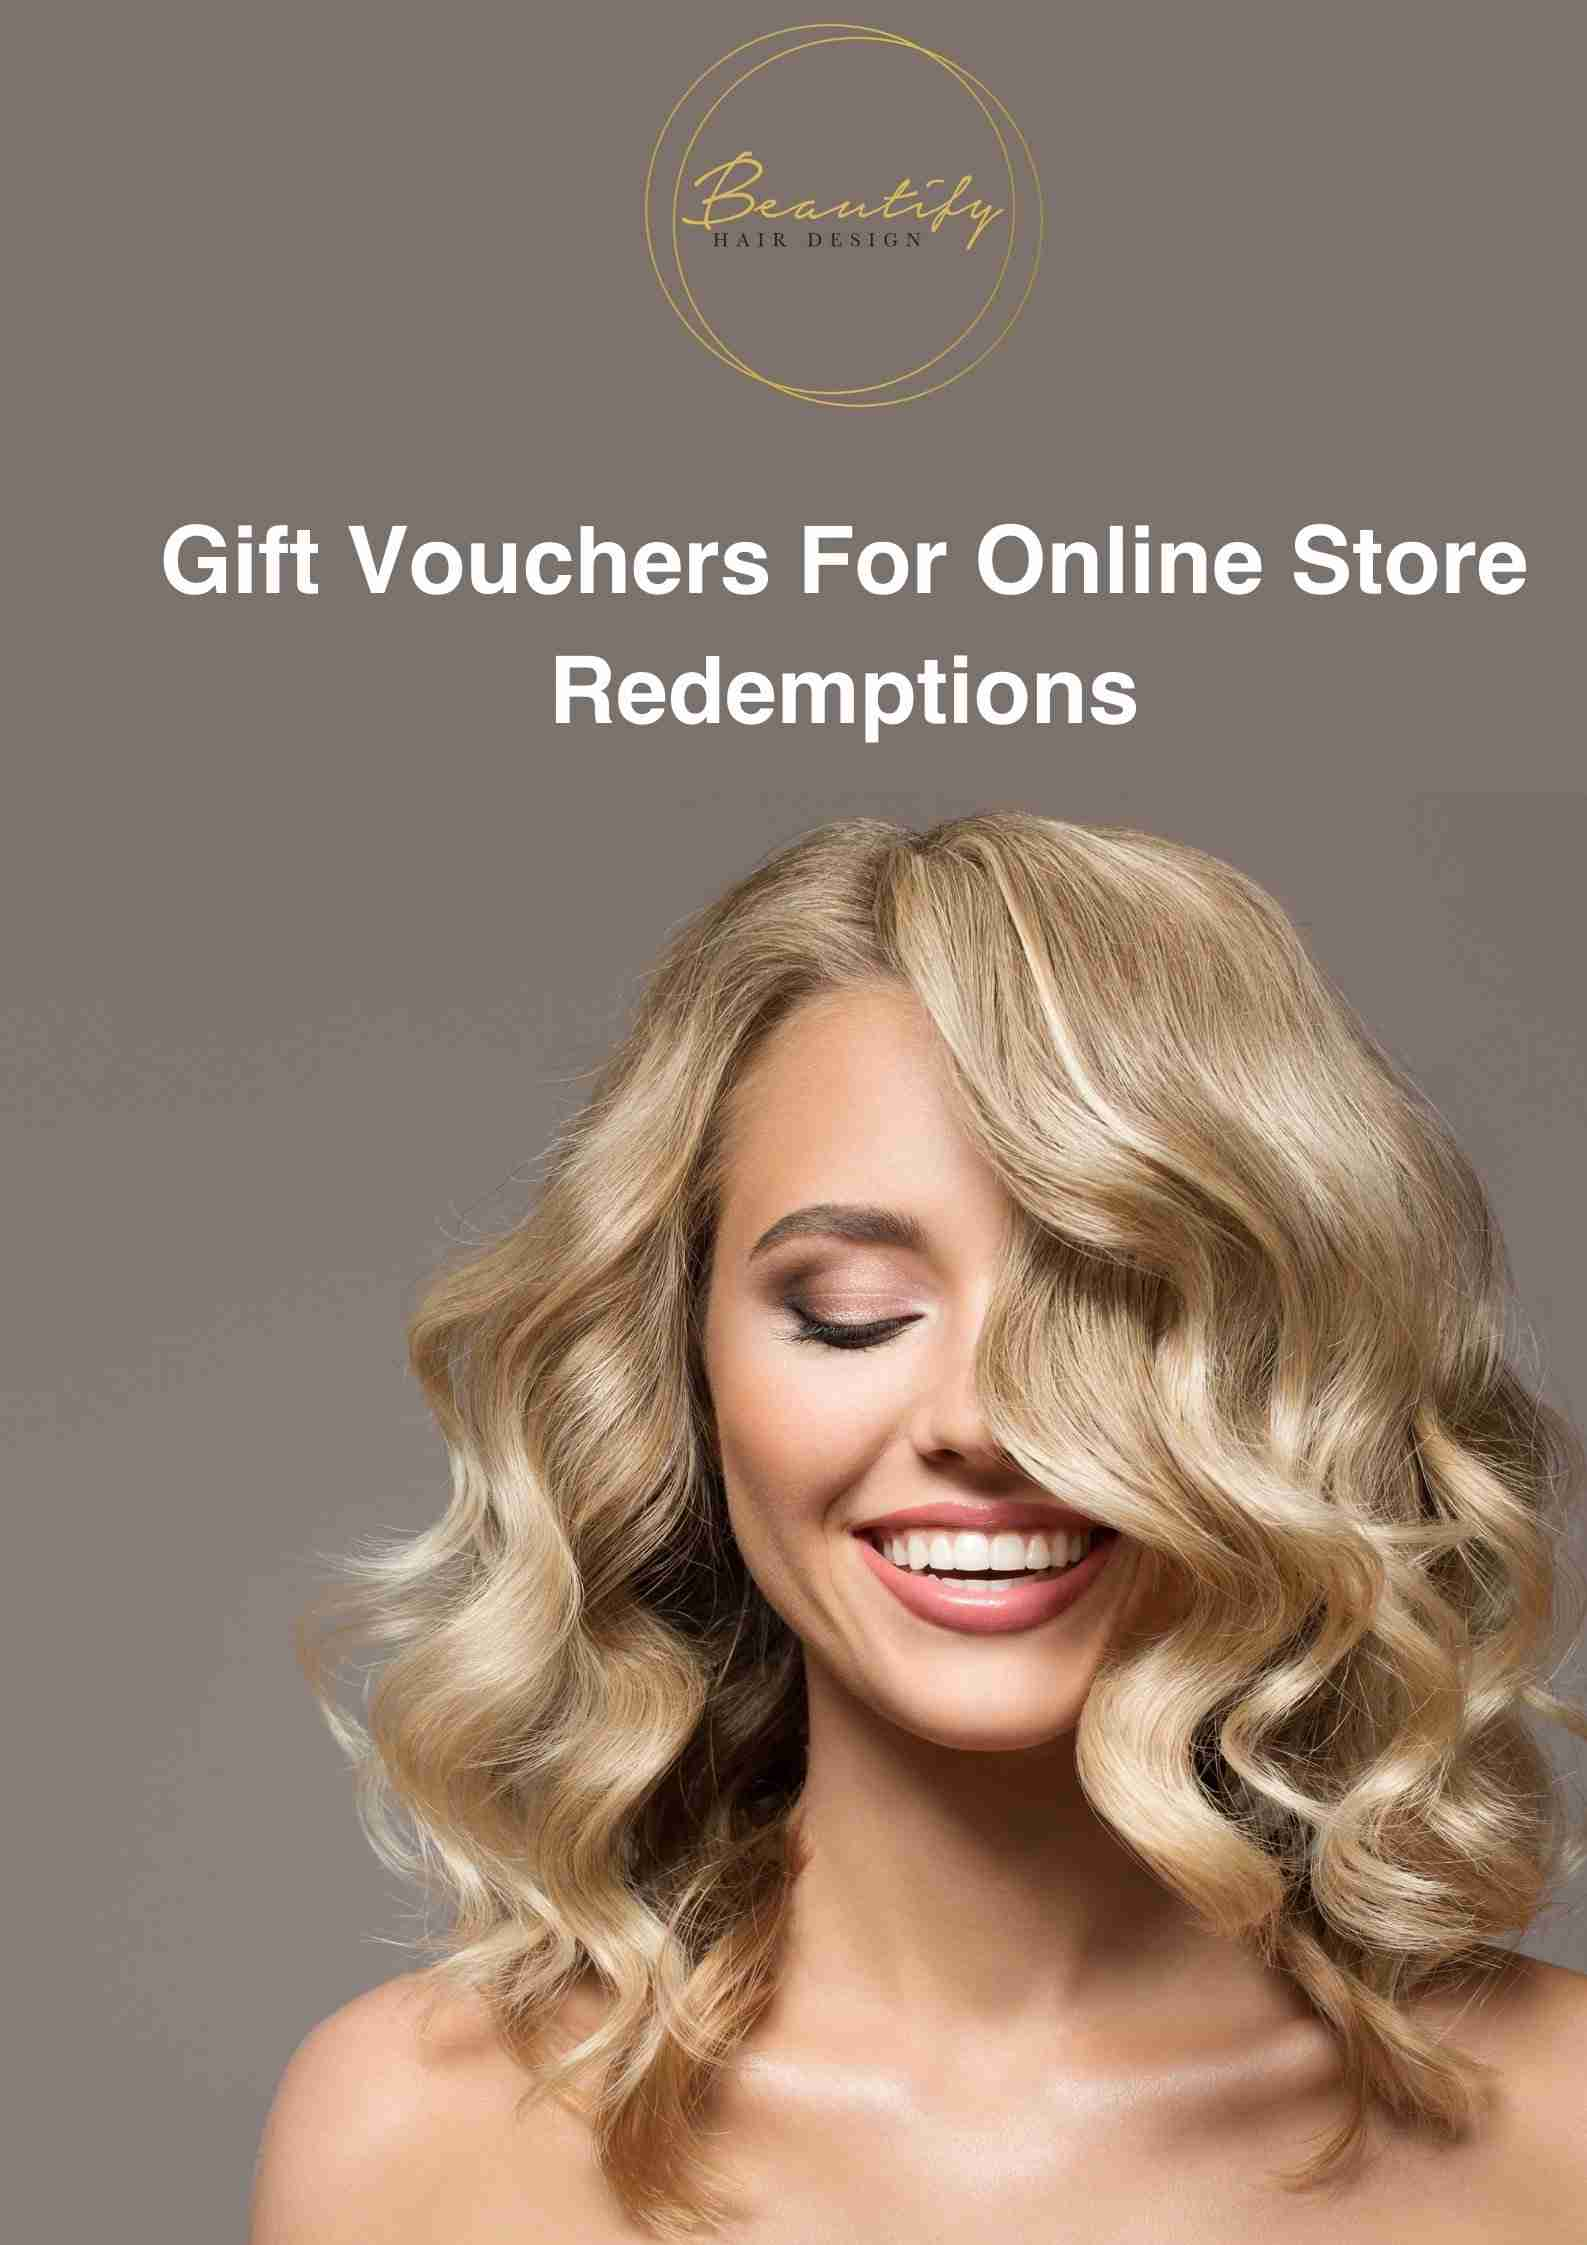 Gift Vouchers For Online Store Redemption